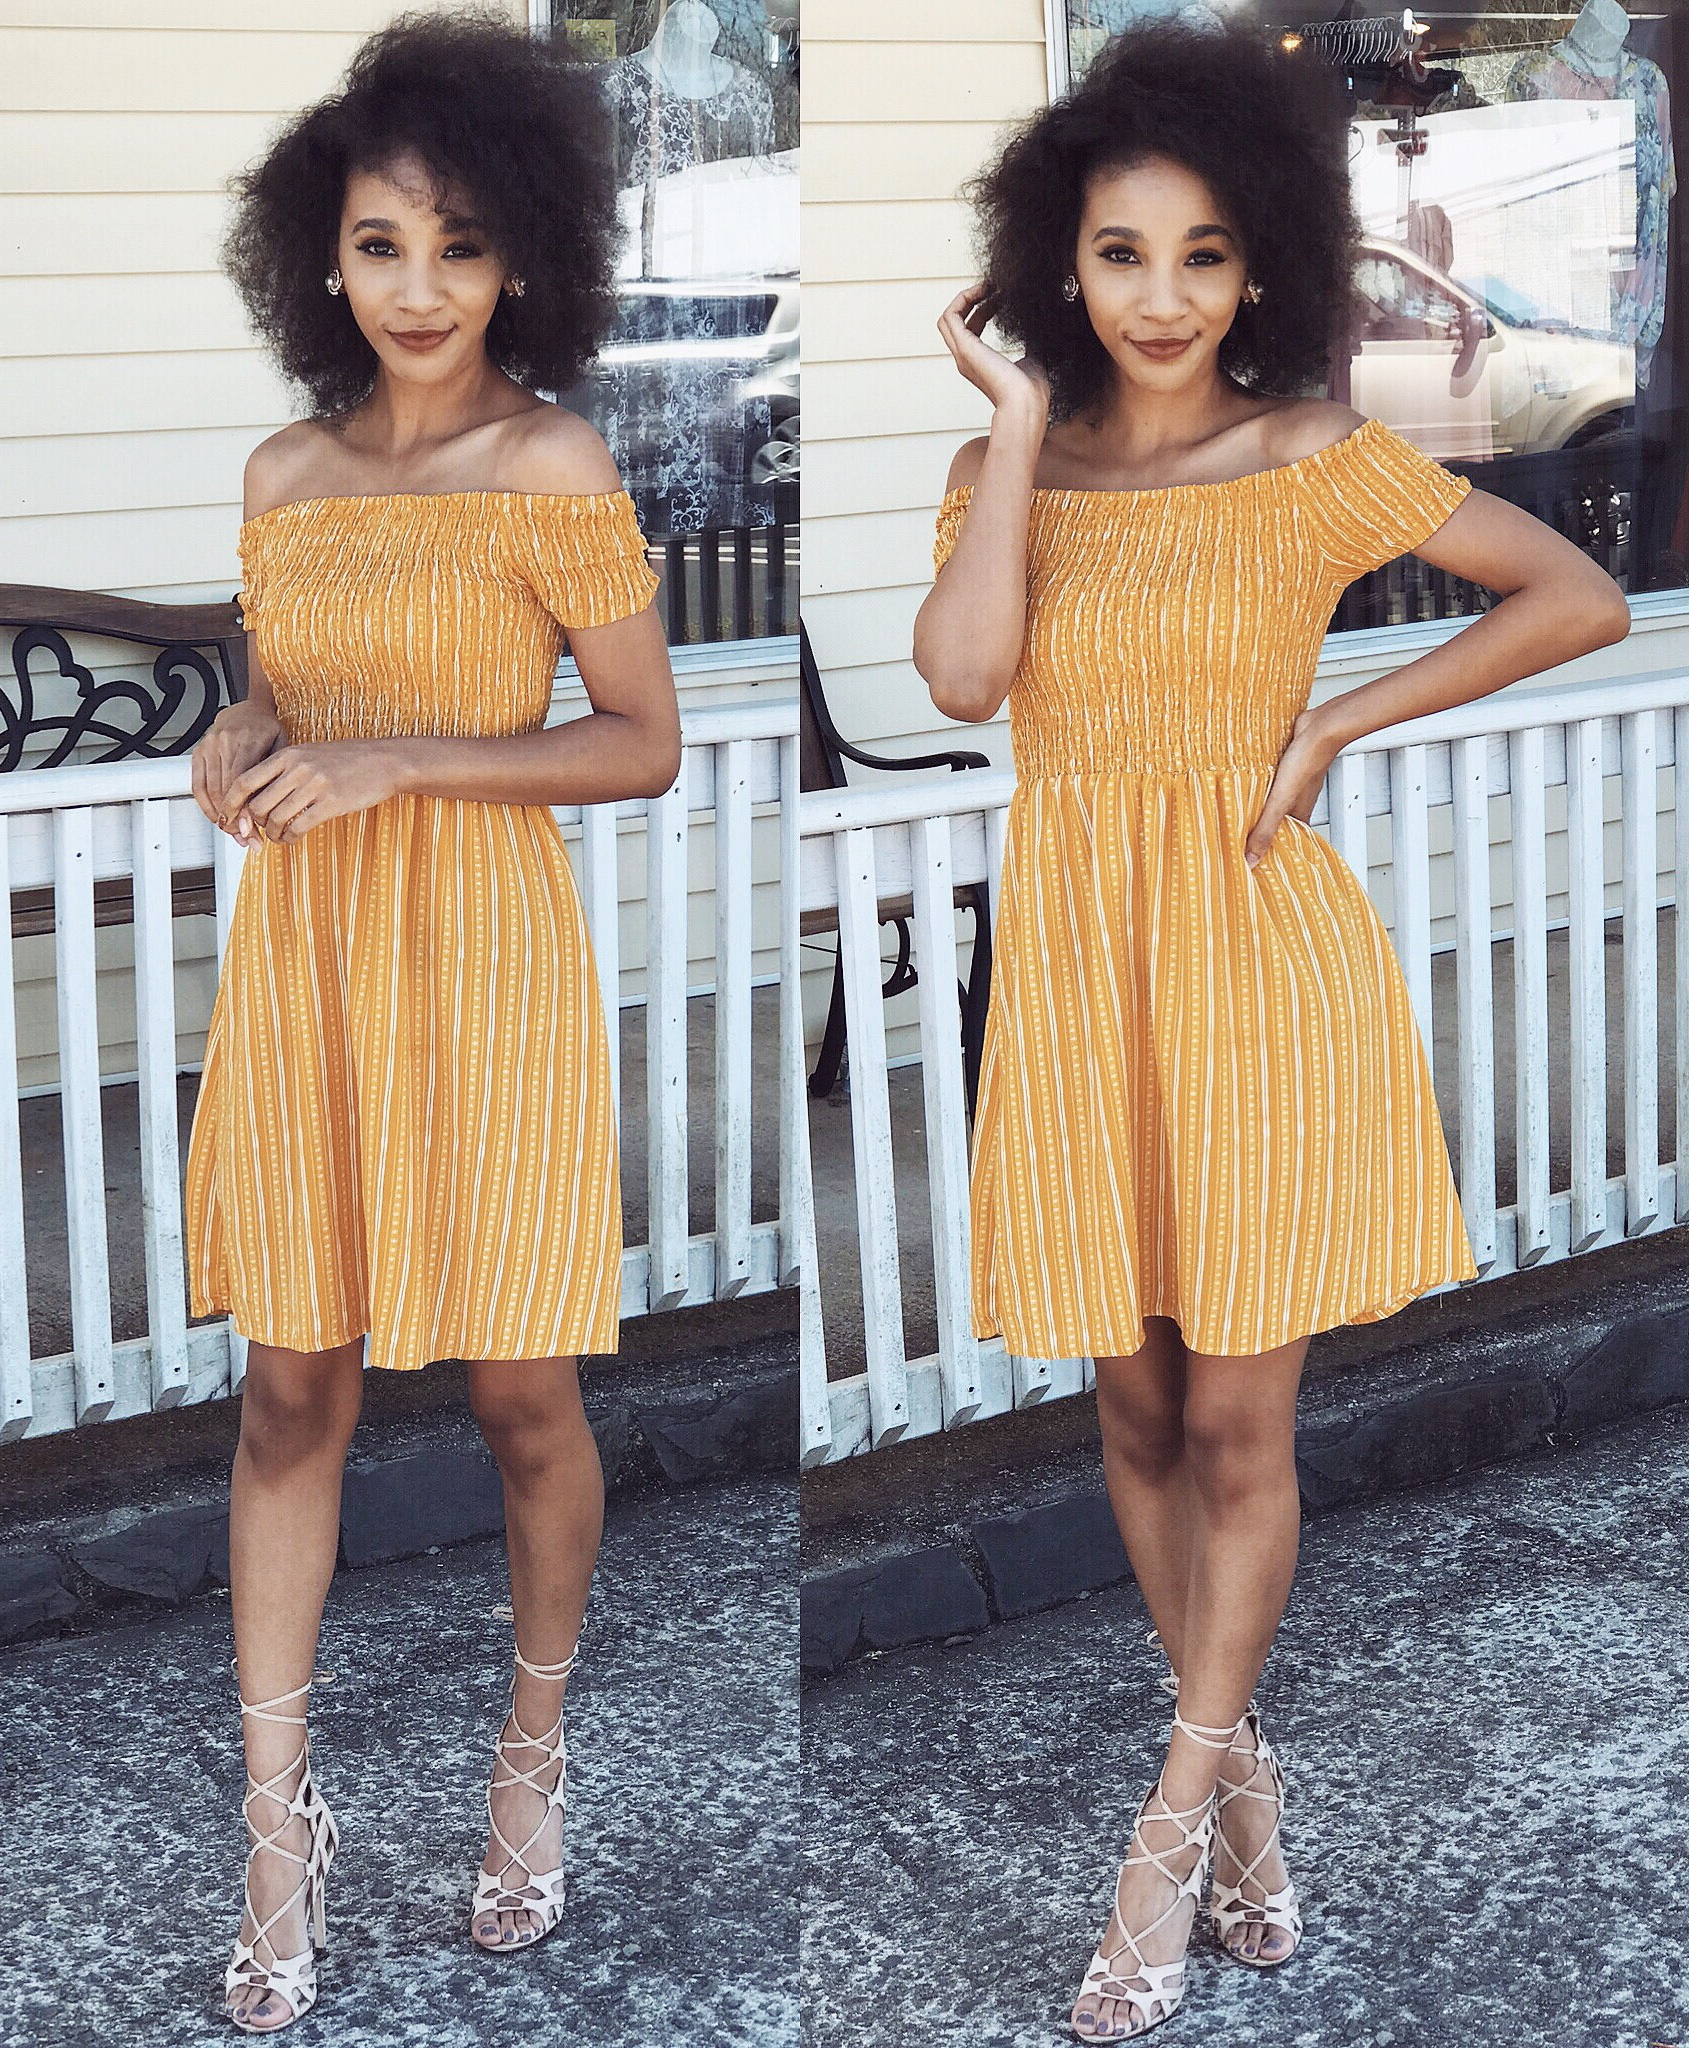 Mustard yellow and white striped, off-the-shoulder dress: Rue 21  Heels: Charlotte Russe